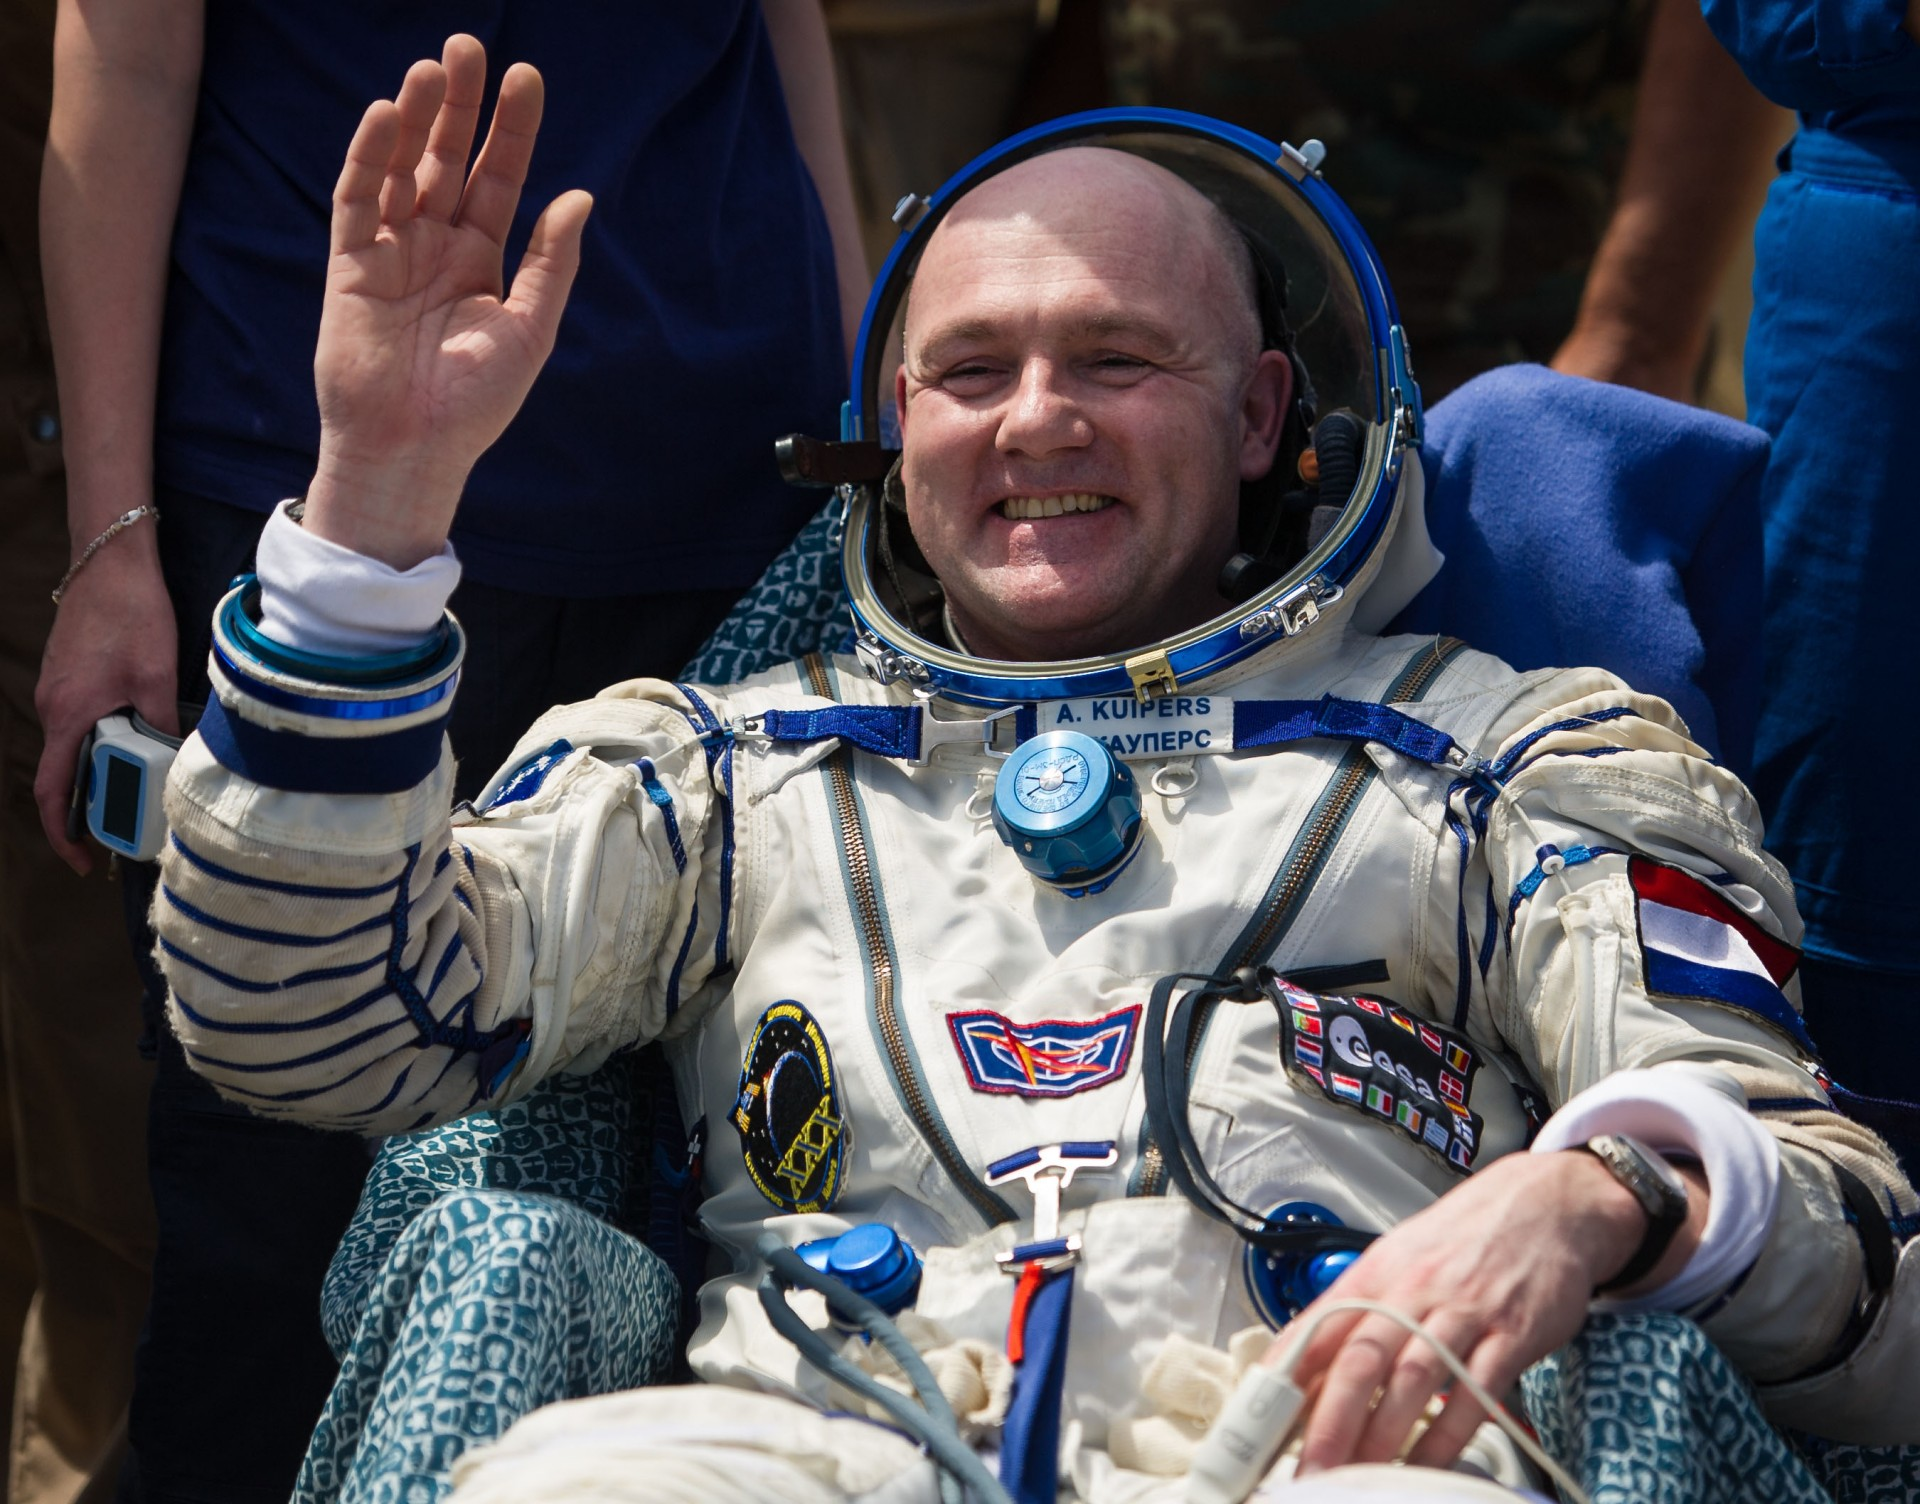 Dutch astronaut André Kuipers is one of Spacebuzz' most prominent ambassador NASA/BILL INGALLS